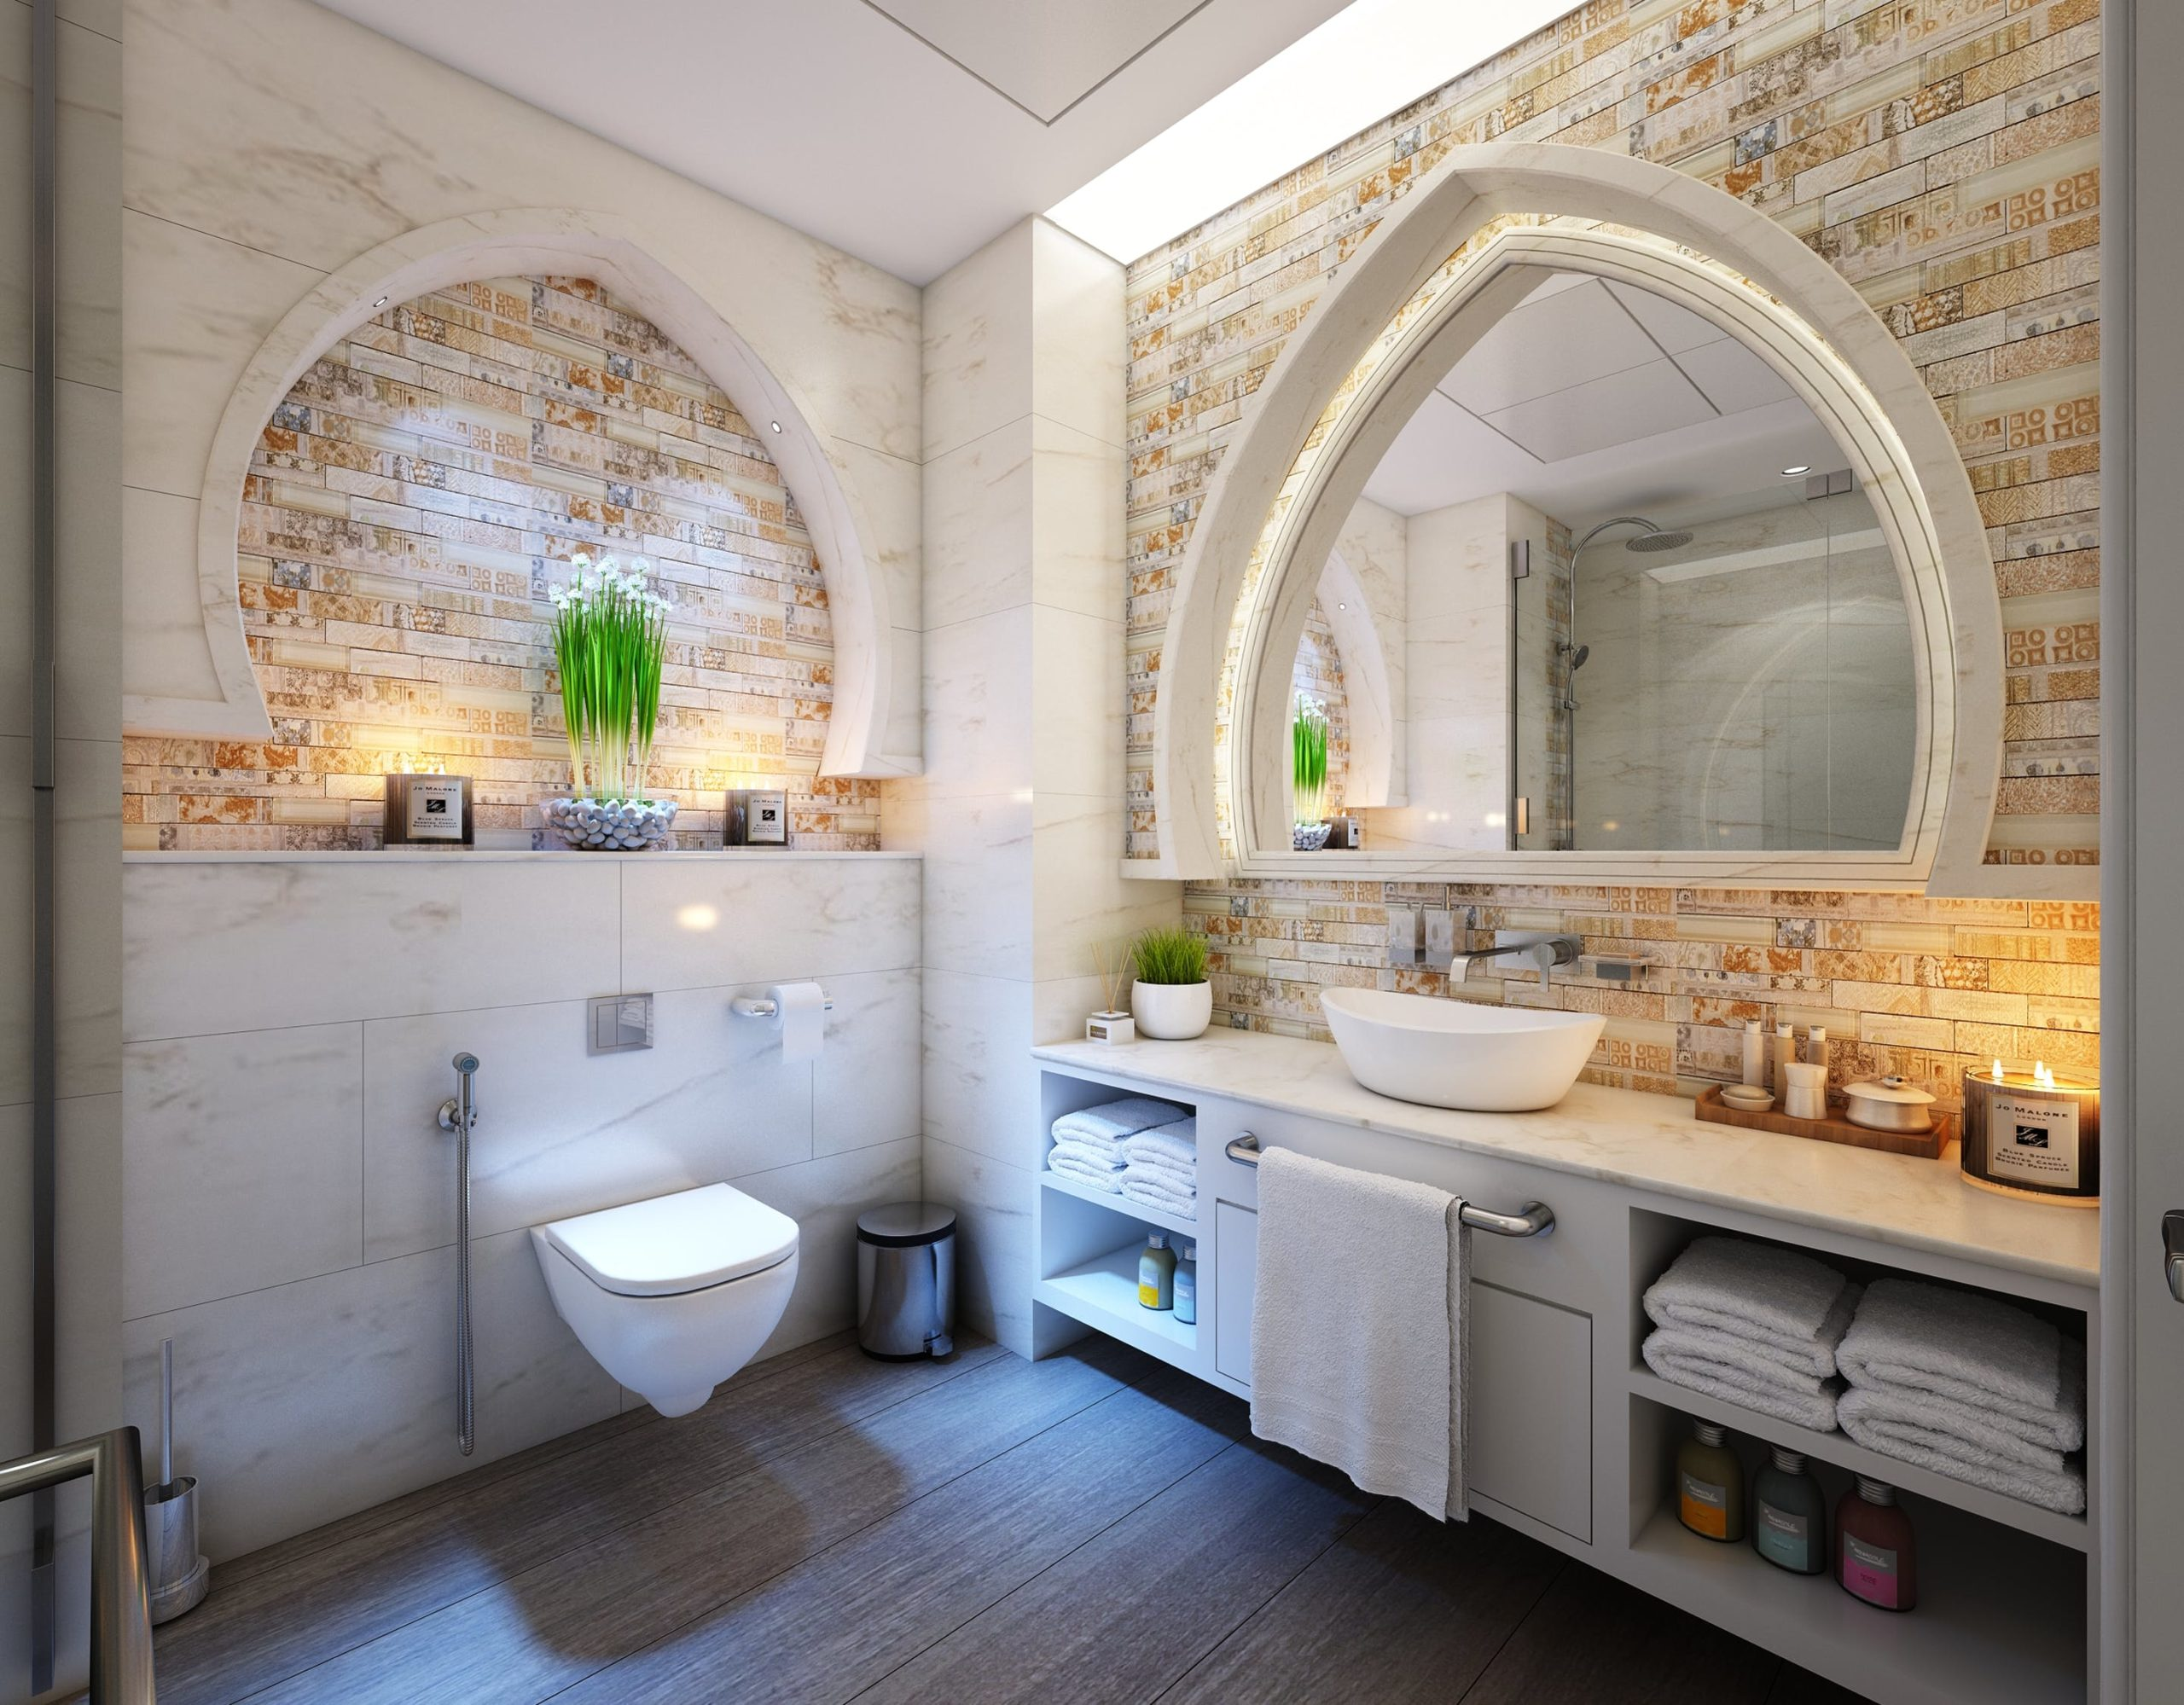 Bathroom Trends: Decorating With Tiles